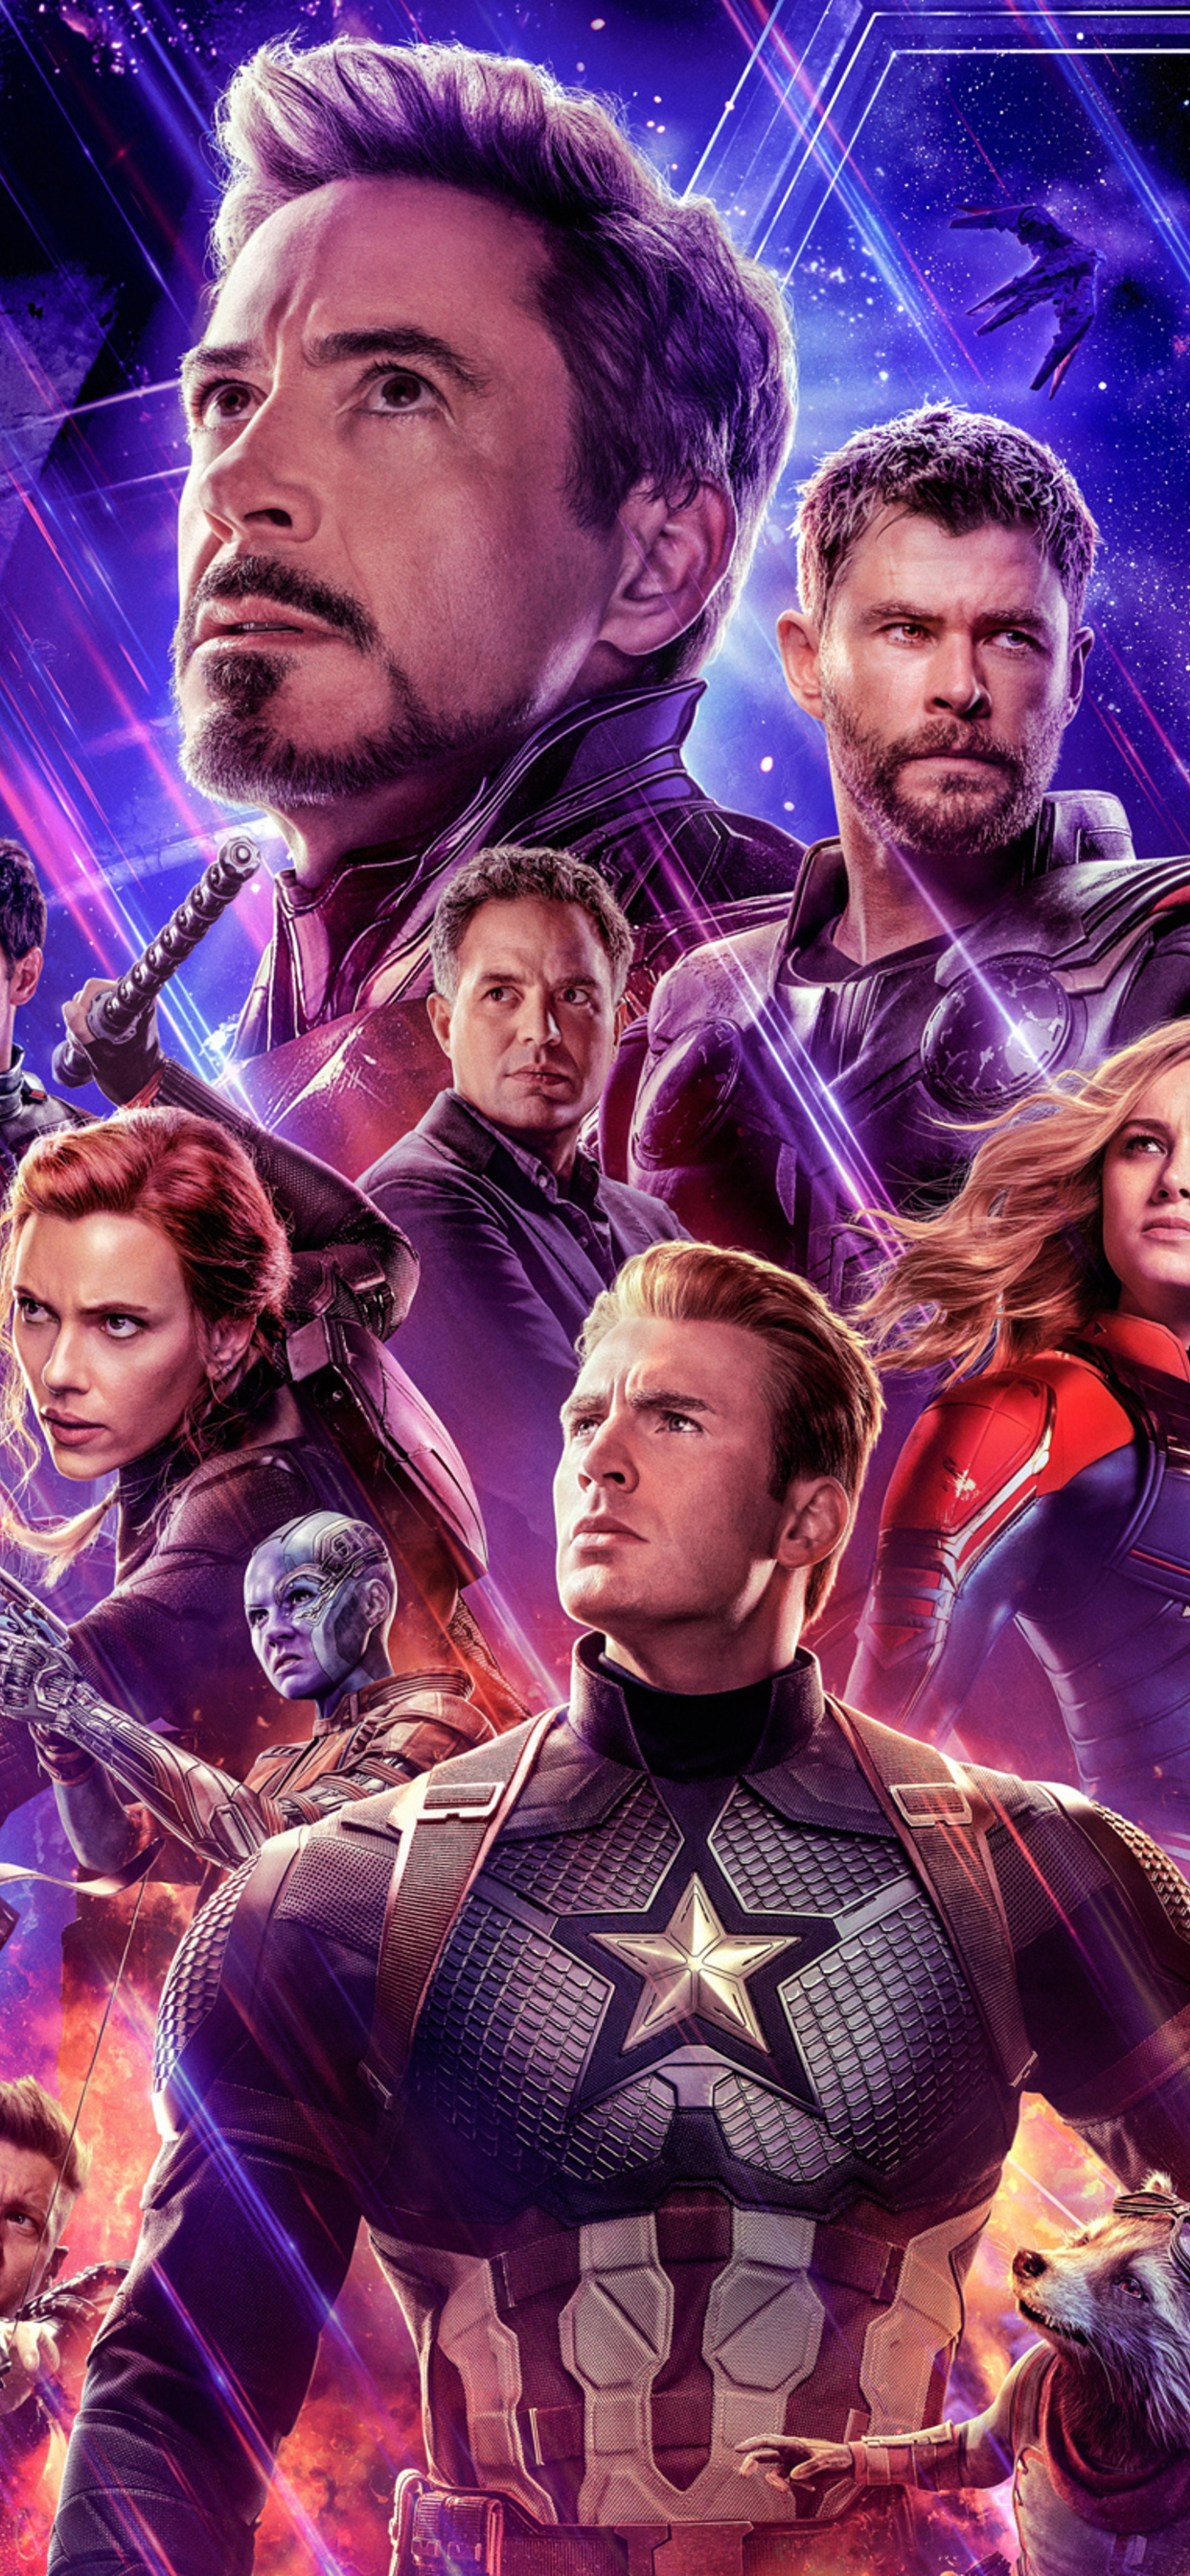 1242x2688 Avengers Endgame 2019 Official New Poster Iphone Xs Max Hd